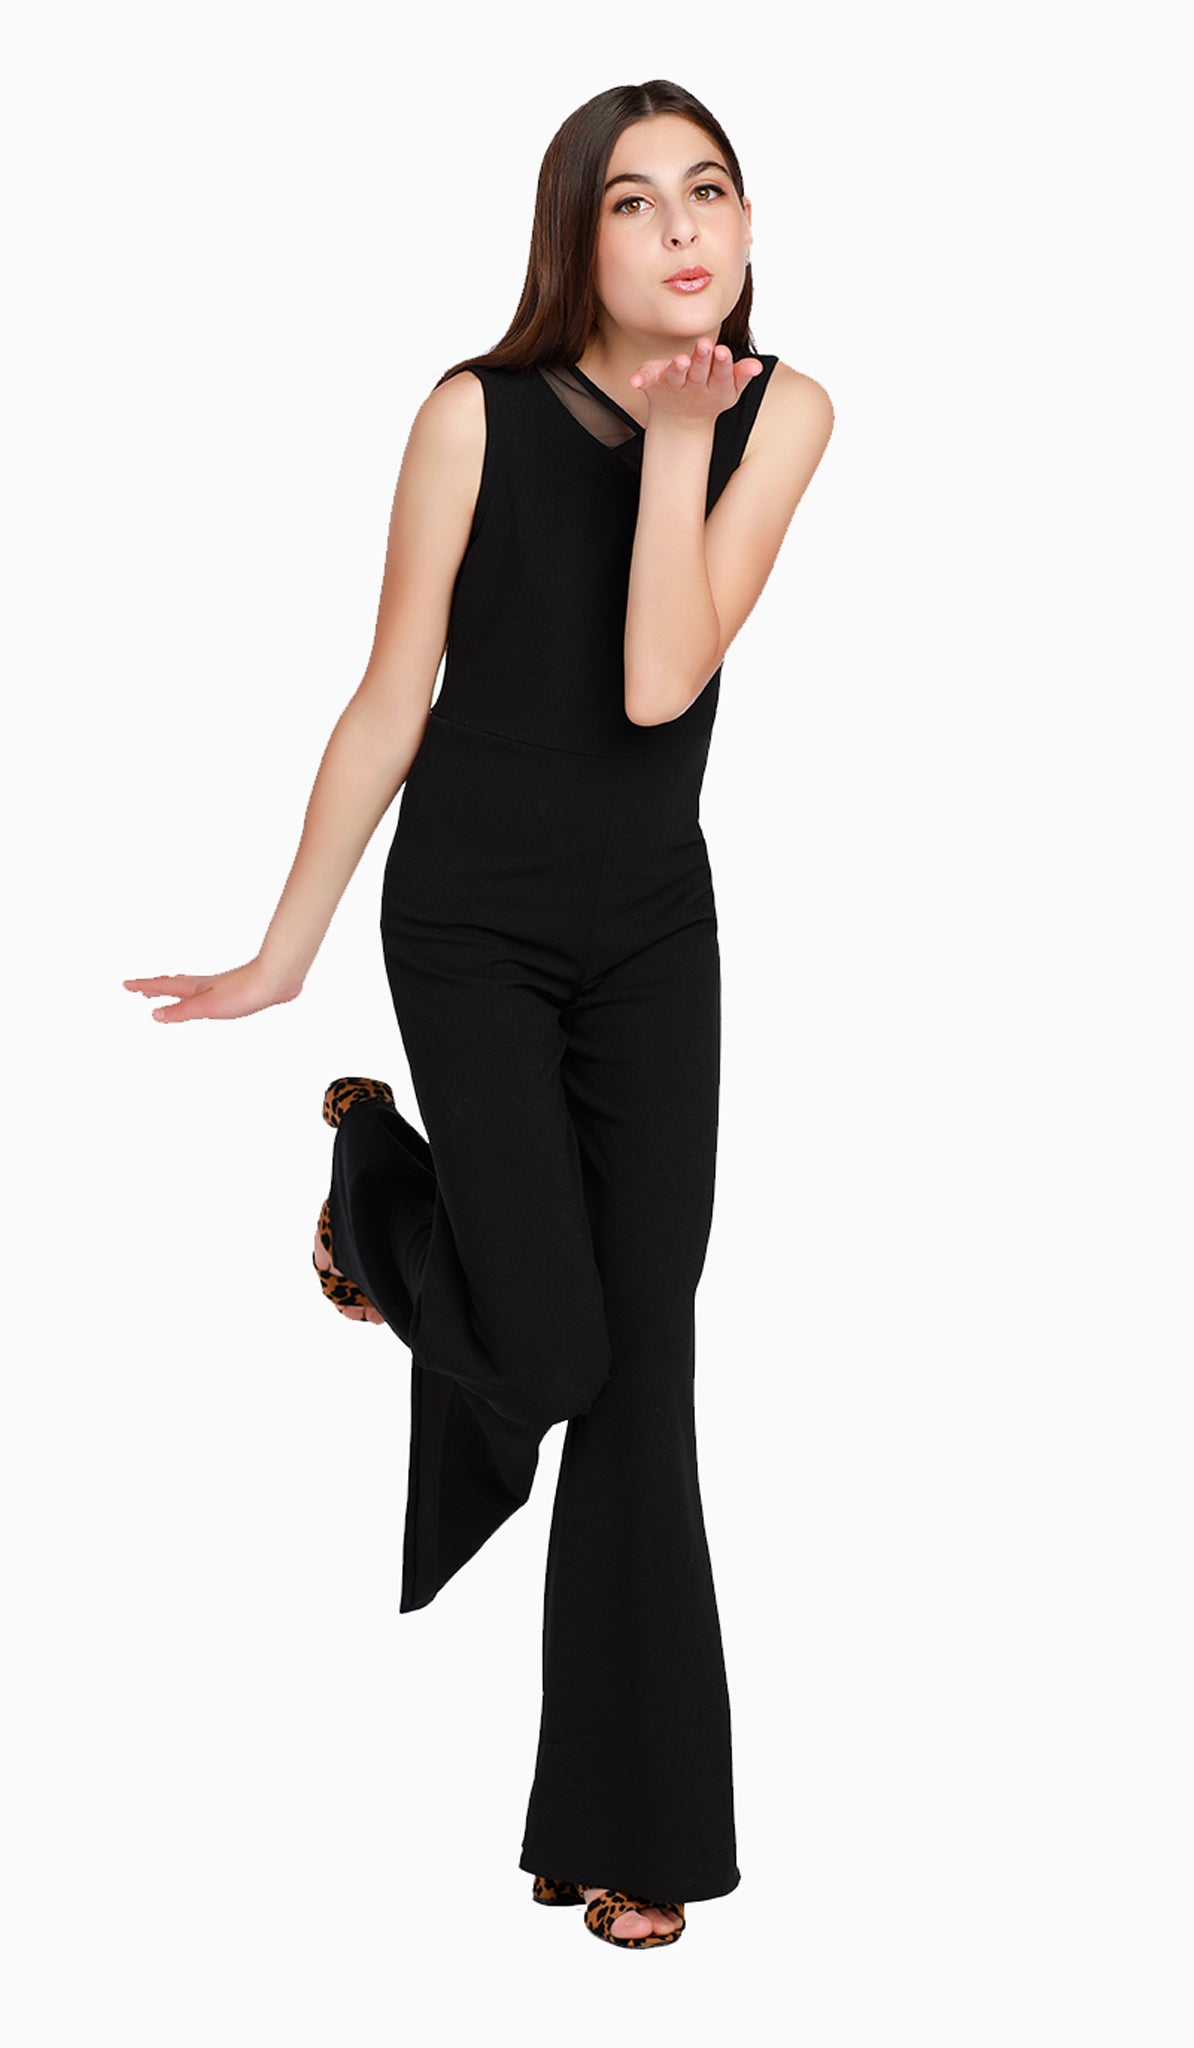 The Sally Miller Alexis Jumpsuit | Black stretch crepe georgette jumpsuit with neck mesh detail and zipper at back  | Luxury tween dresses & juniors dresses for all occasions and events